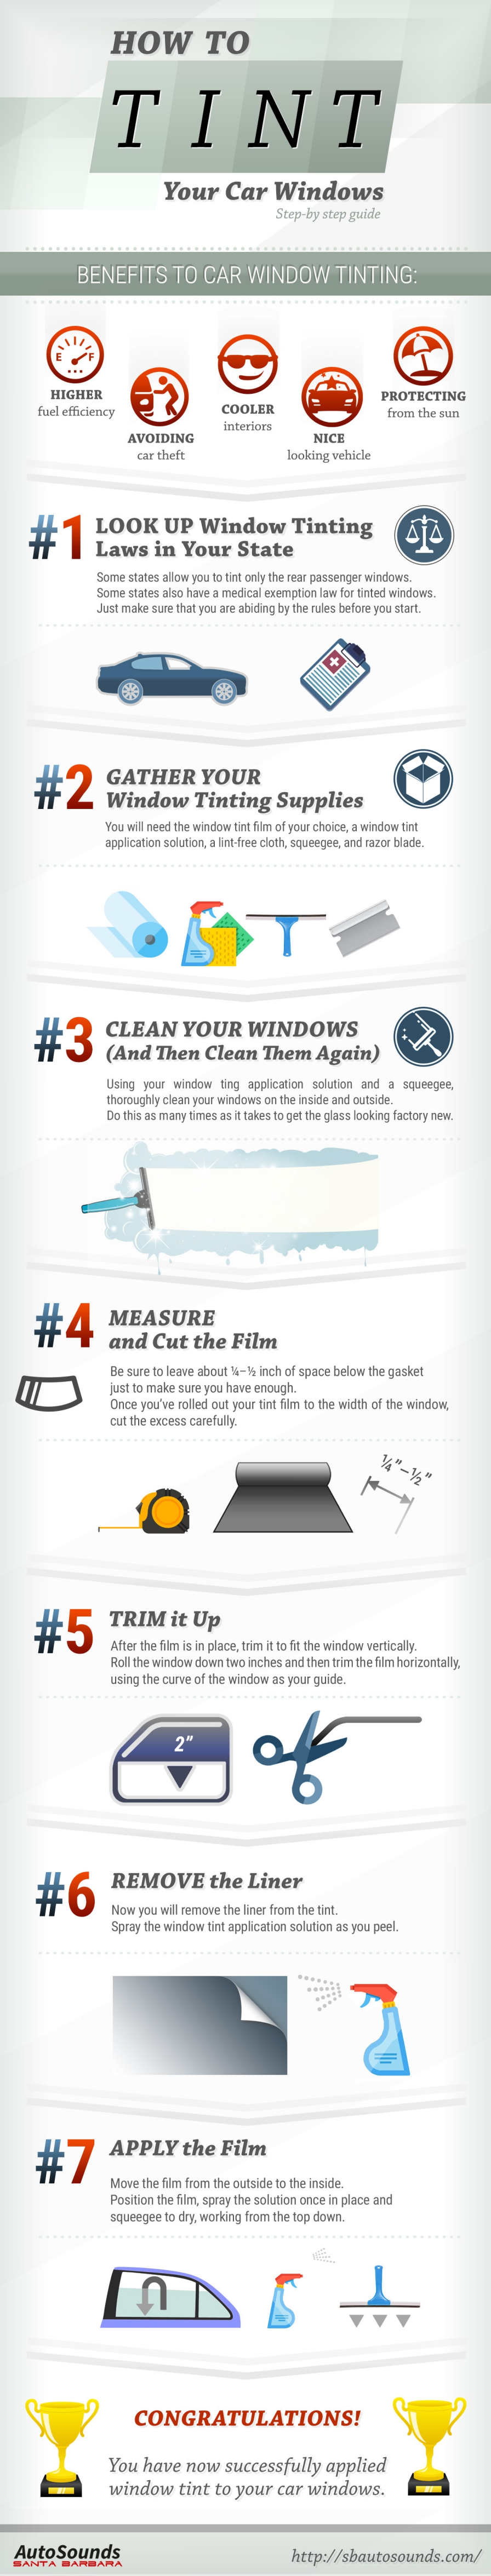 How To Tint Your Windows Infographic